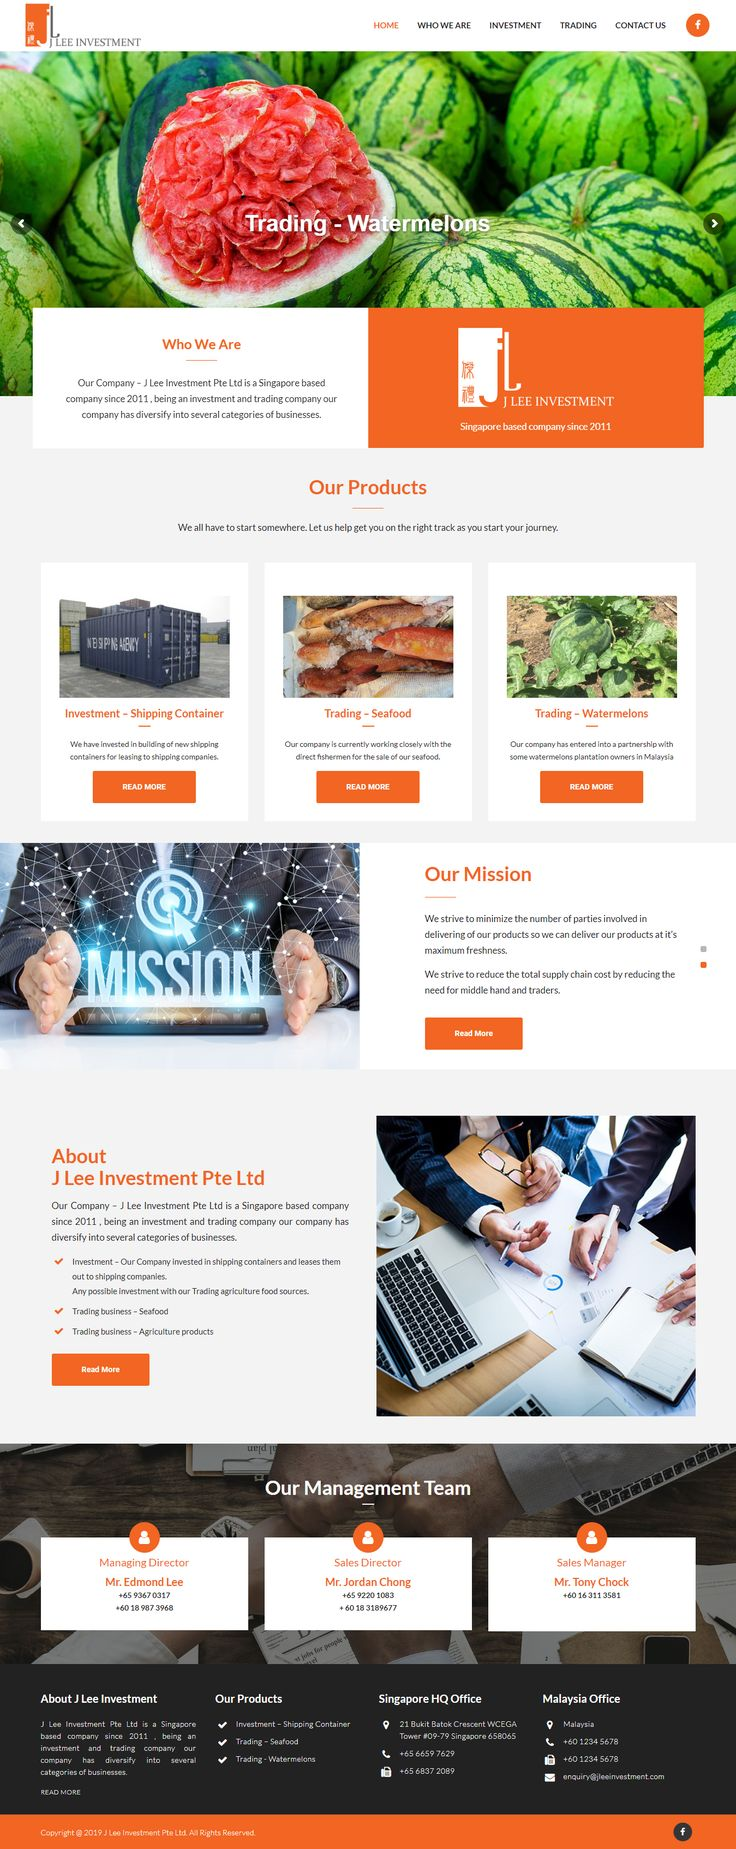 Trading Products Services Mission Corporate Webdesign Development Inforgraphic Ecommerce Respons Web Development Design Custom Web Design Cms Website